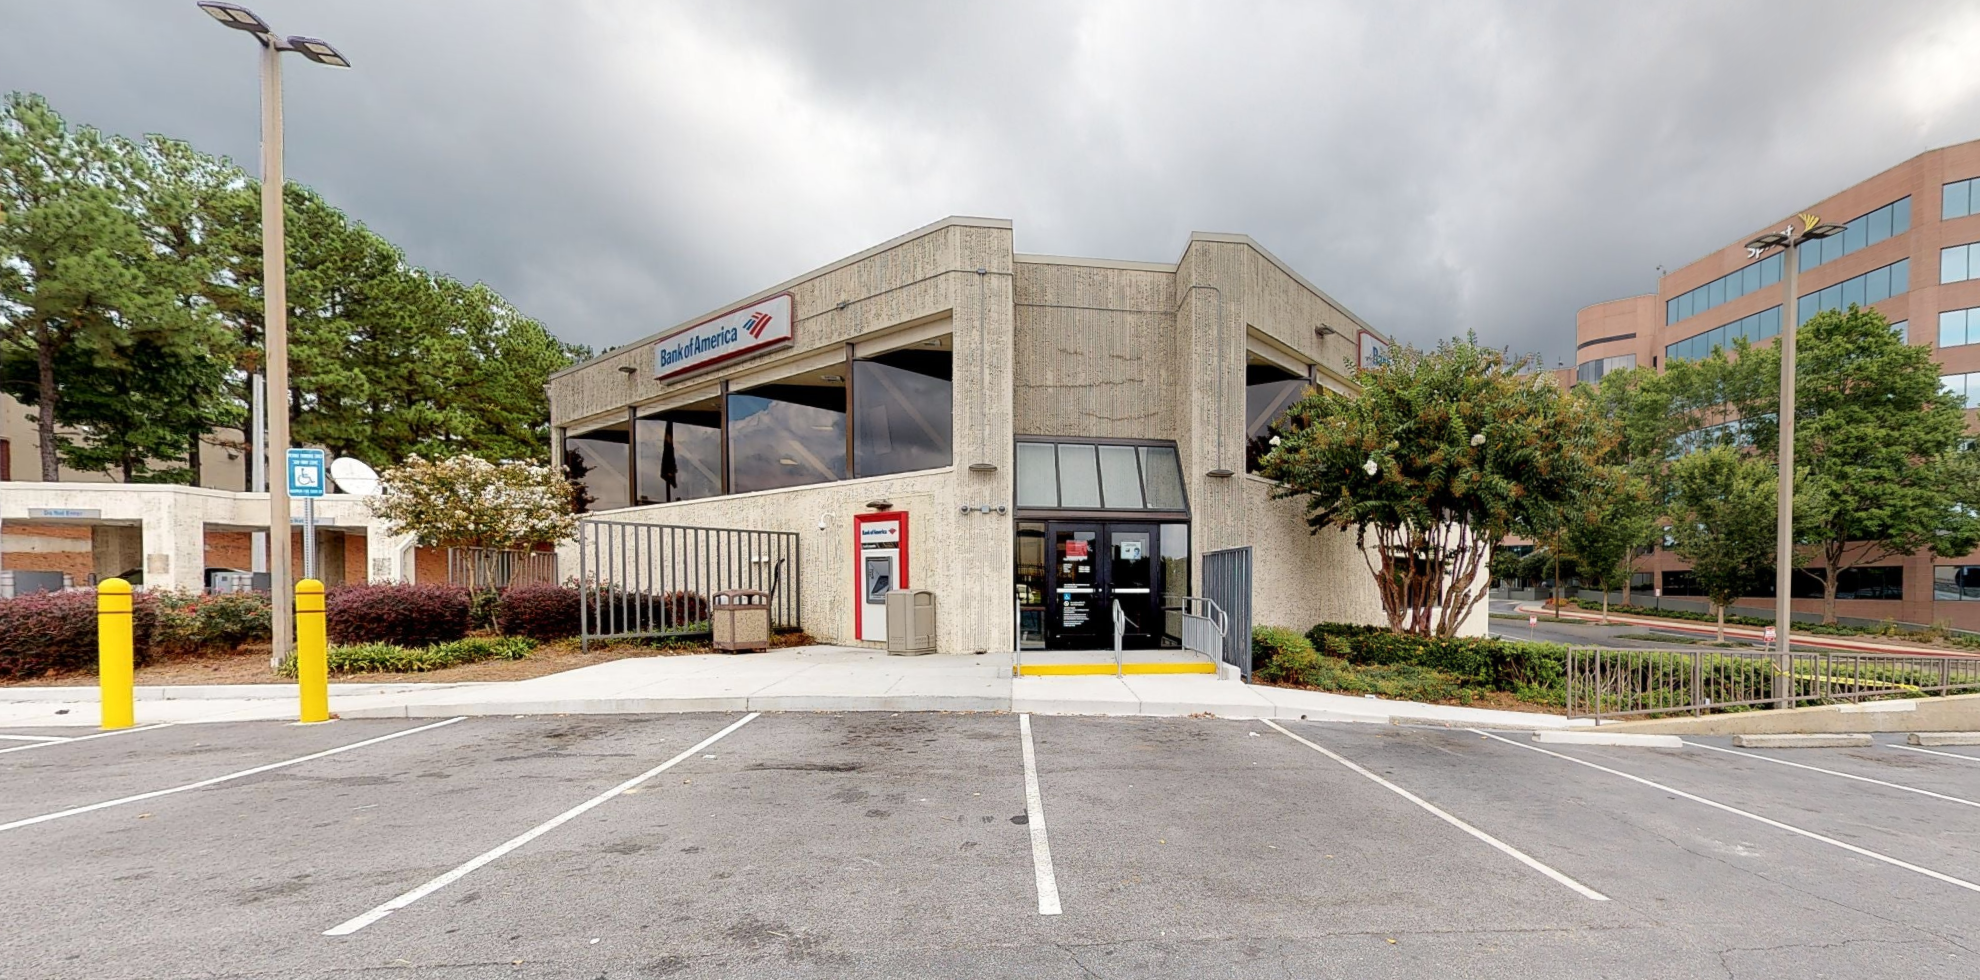 Bank of America financial center with drive-thru ATM and teller   3057 Akers Mill Rd SE, Atlanta, GA 30339